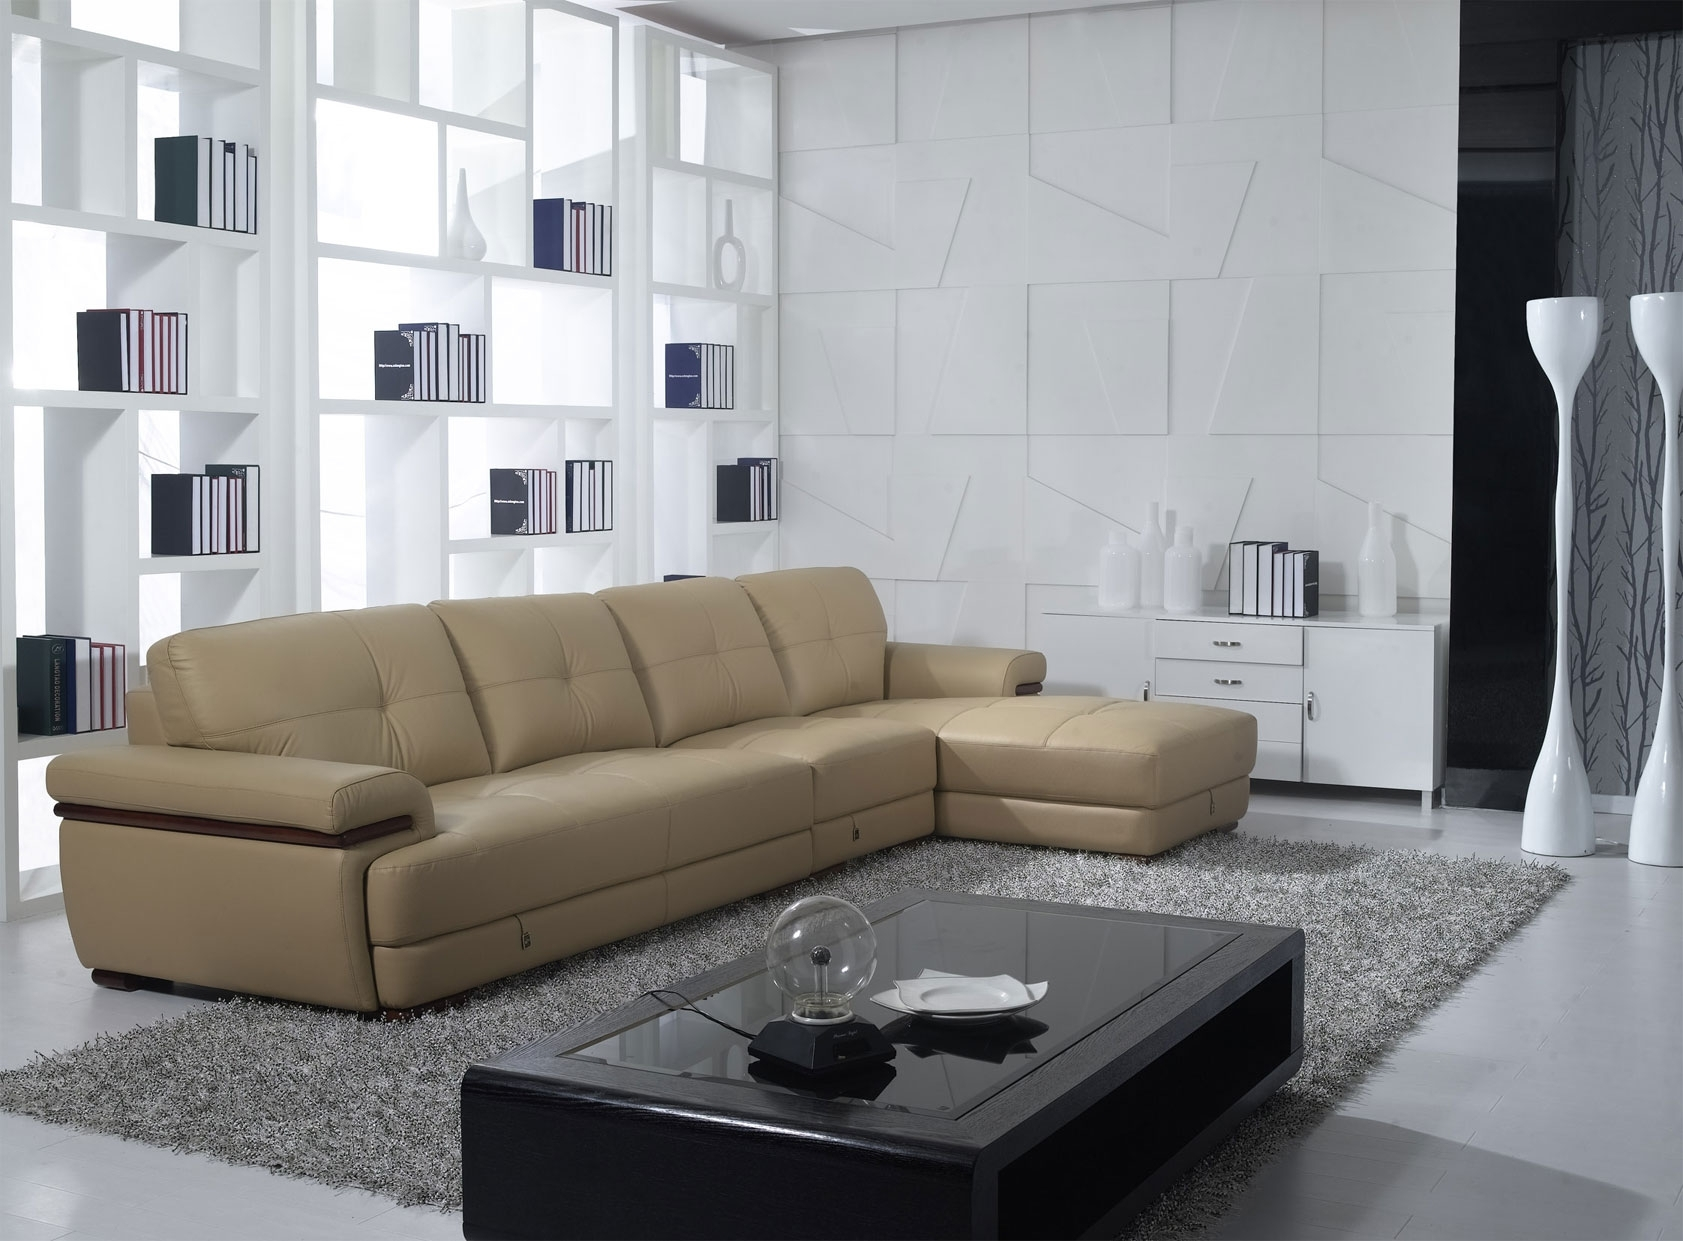 Fancy Quality Sectional Sofas 15 And Couches Ideas With High Sofa With Quality Sectional Sofas (View 2 of 10)